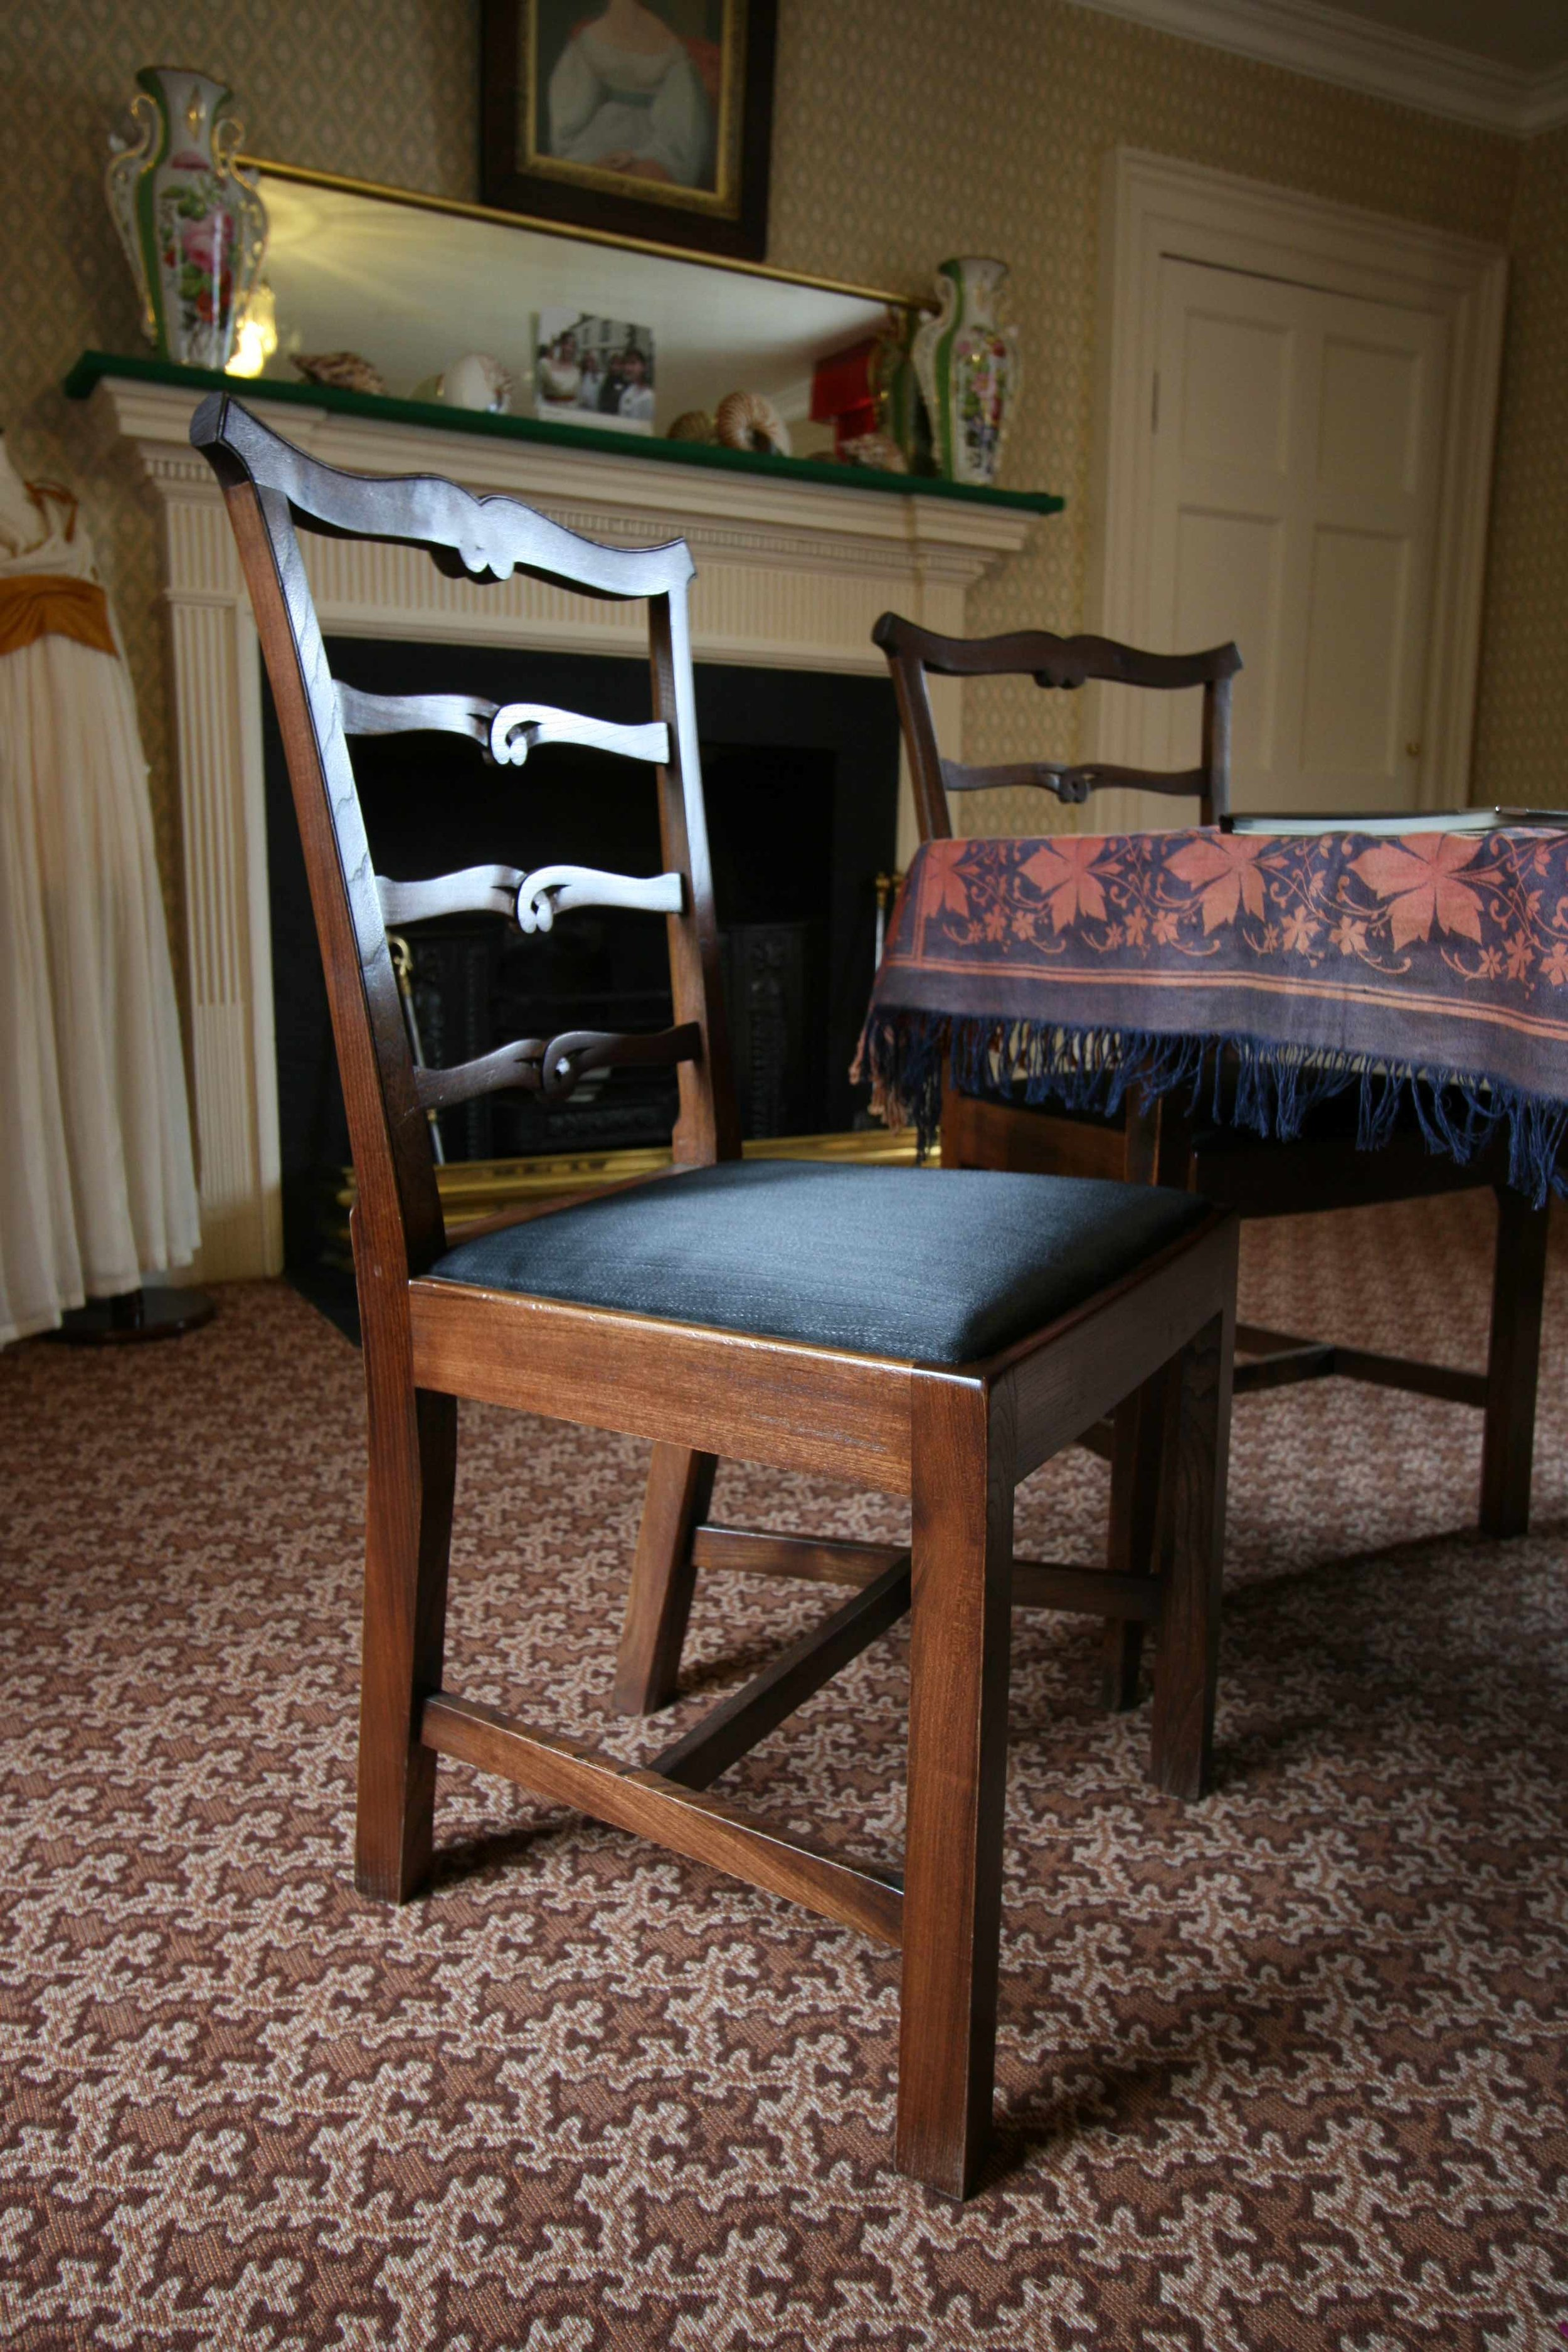 Set of reproduction dining chairs for a historic house.